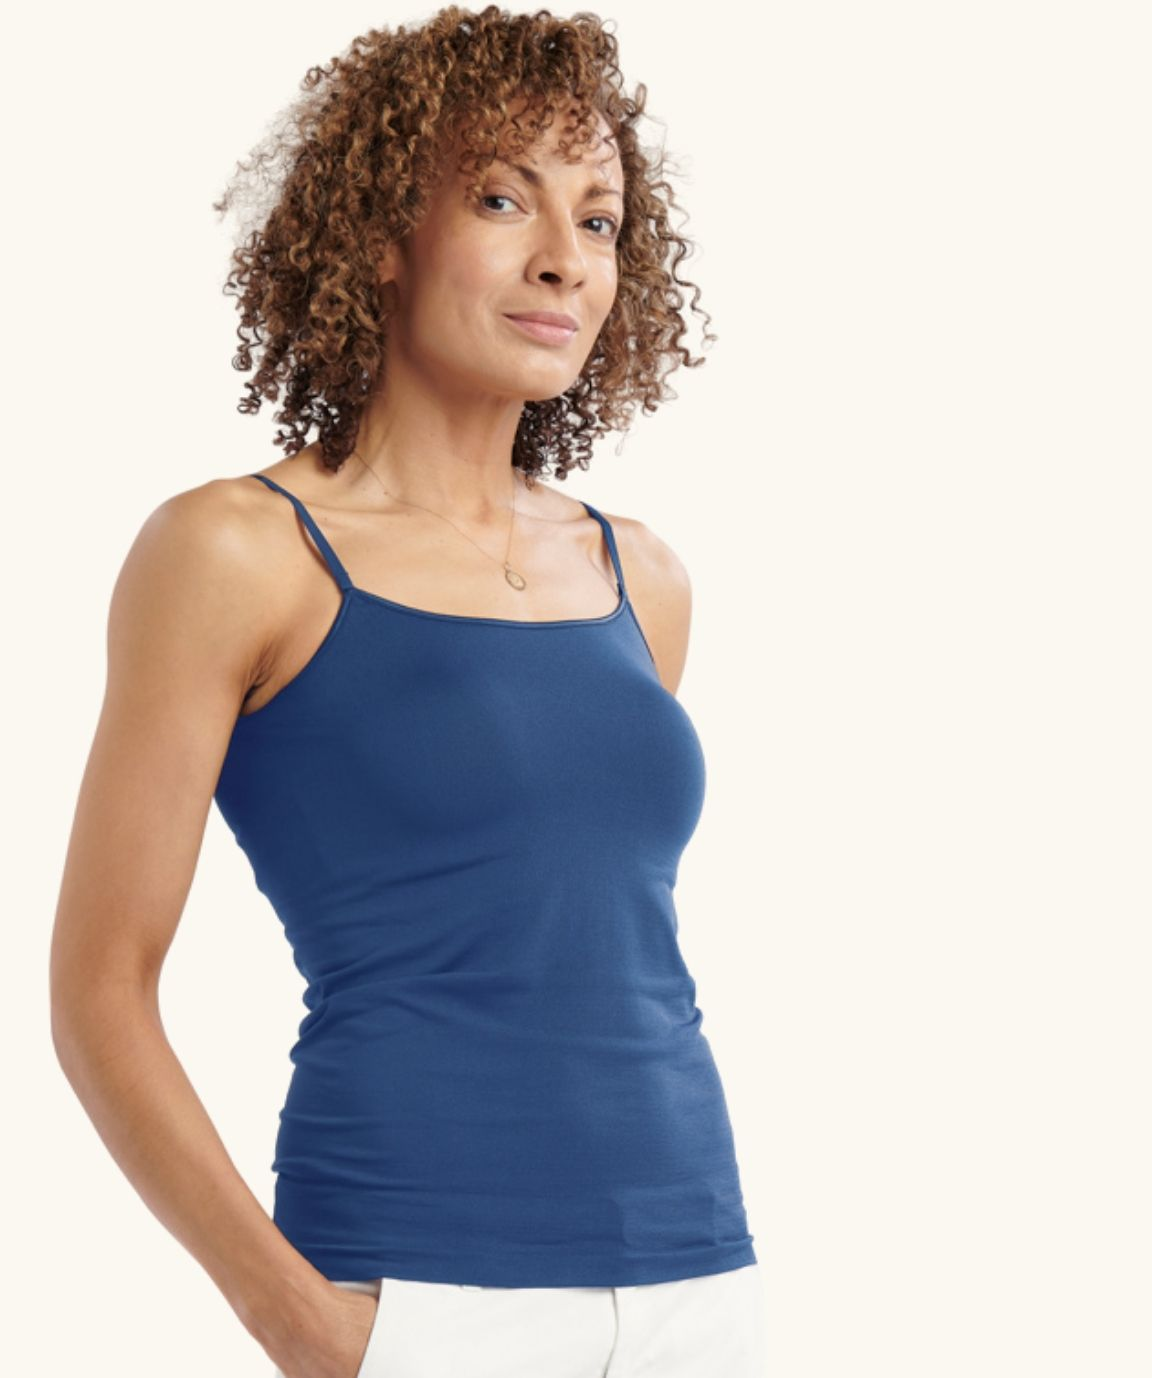 CHOOSING THE RIGHT MENOPAUSE CLOTHING: BECOME'S COMPLETE GUIDE